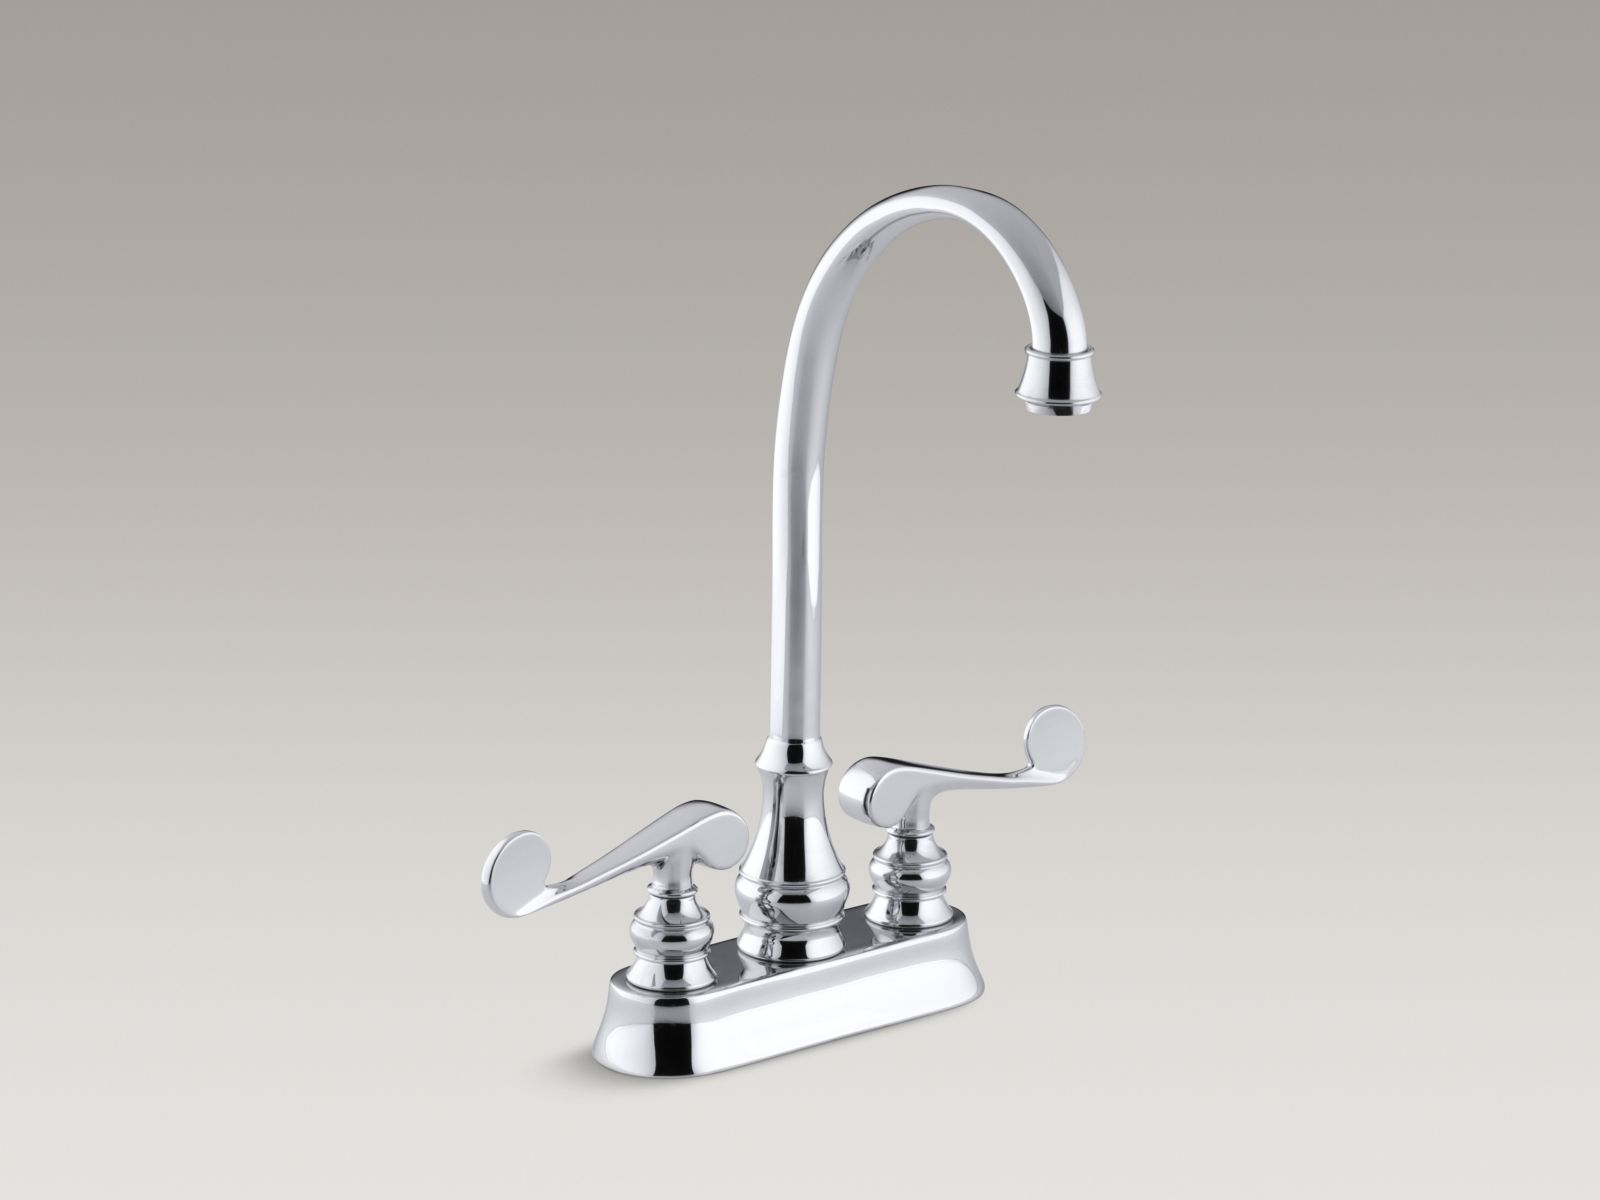 Ideas, kohler evoke bar faucet kohler evoke bar faucet buyplumbing category bar prep faucet 1600 x 1200 1  .